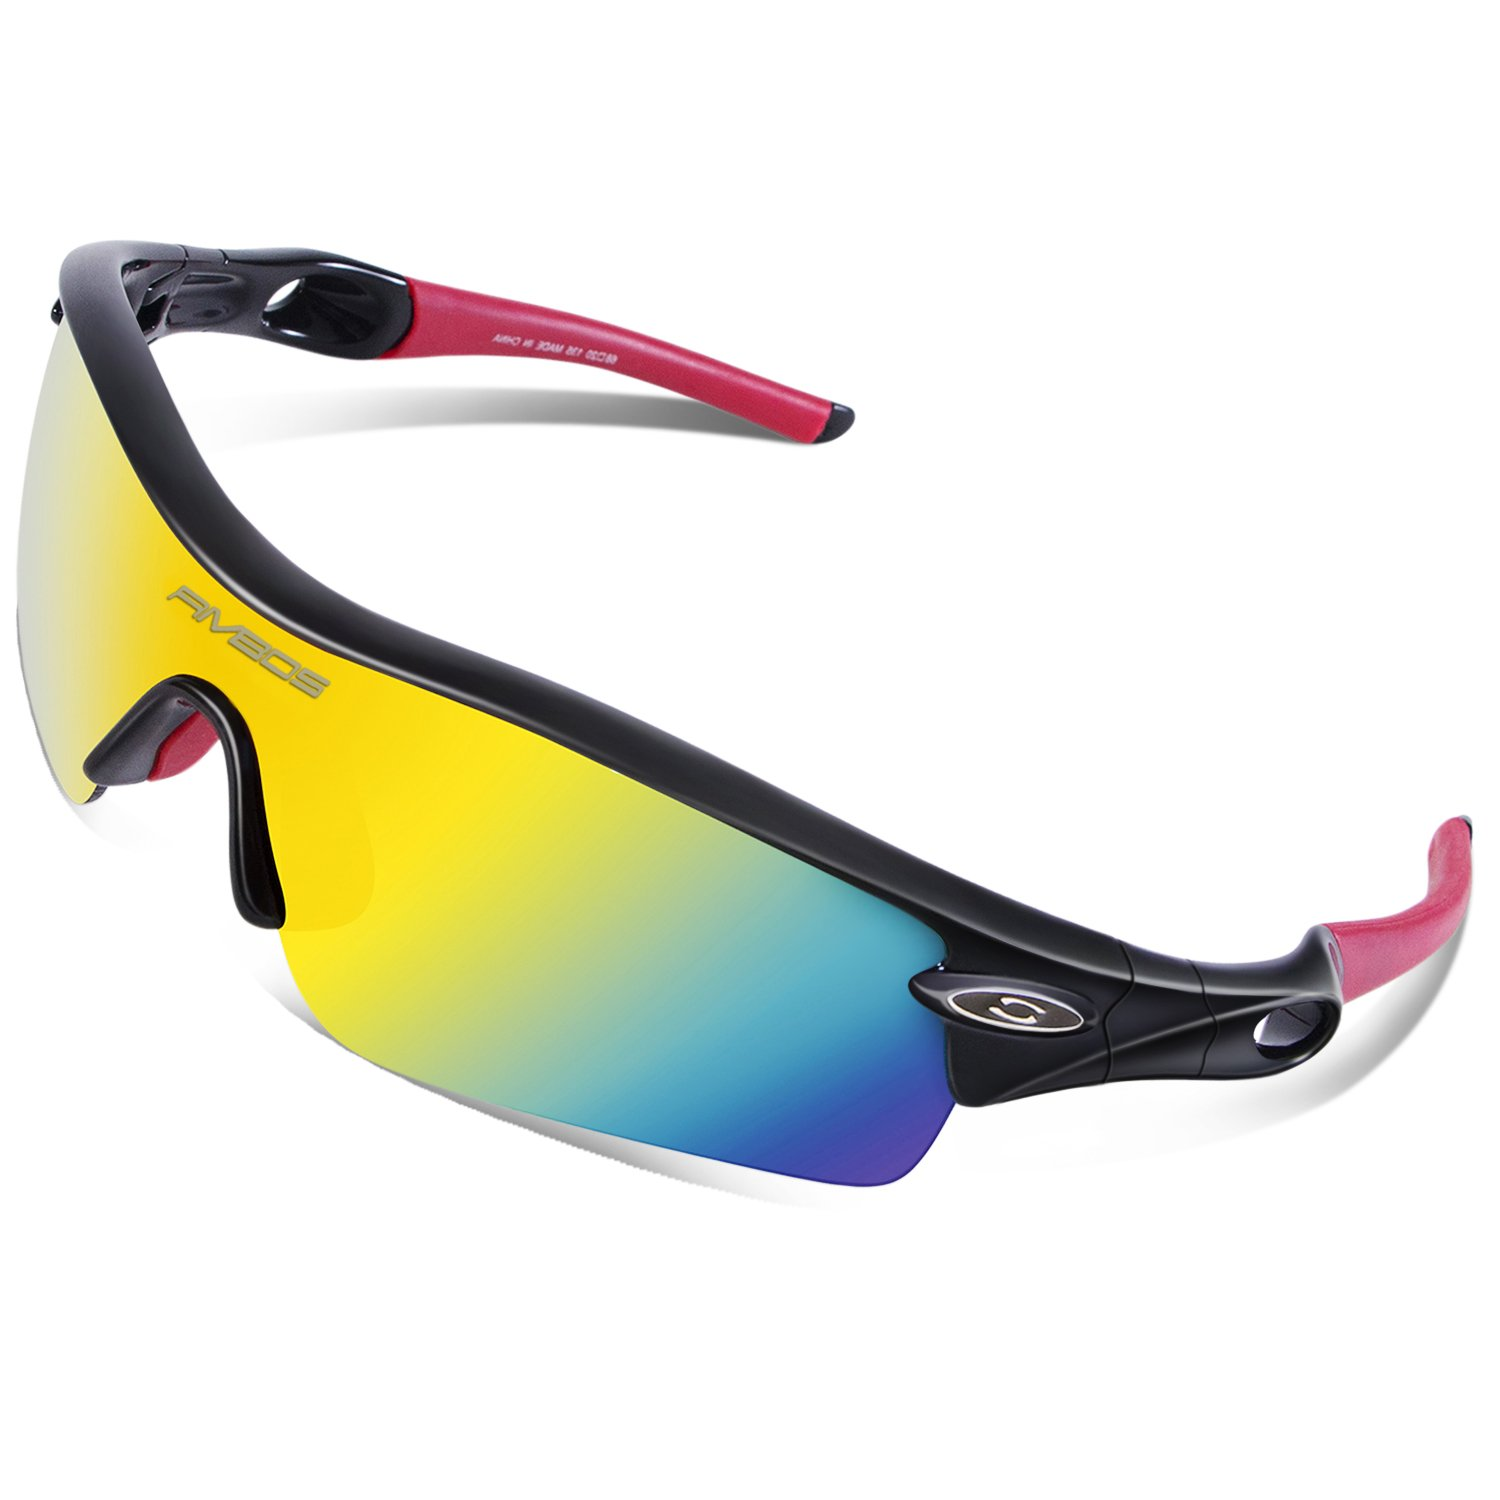 629eead365bd1 Amazon.com   RIVBOS 805 TR 90 Frame Polarized Sports Sunglasses Sun Glasses  with 5 Set Interchangeable Lenses for Men Women Cycling Baseball   Sports    ...